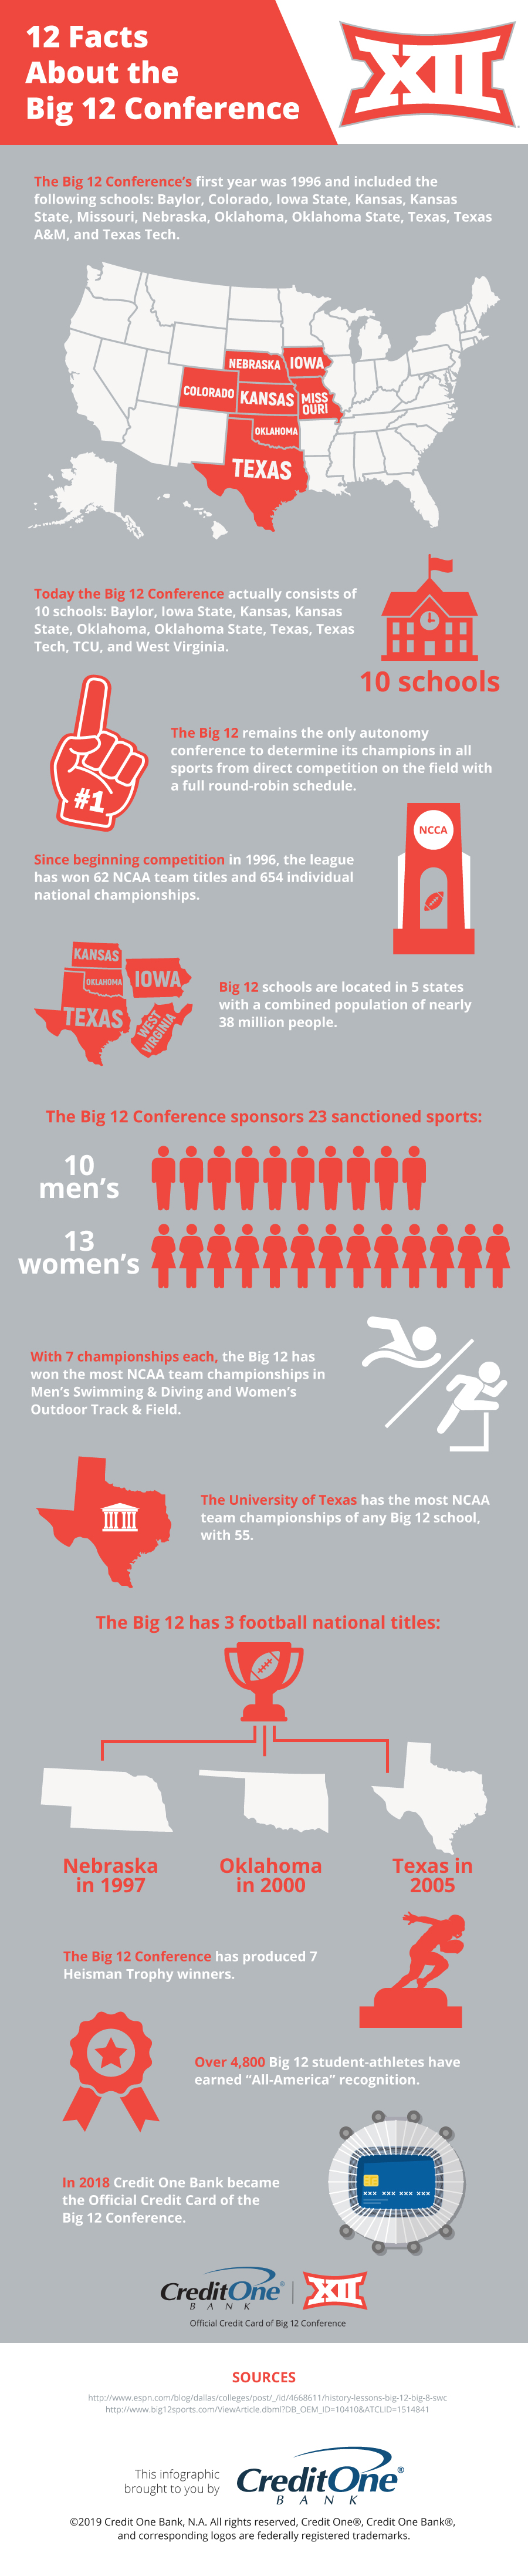 Big 12 Conference Facts